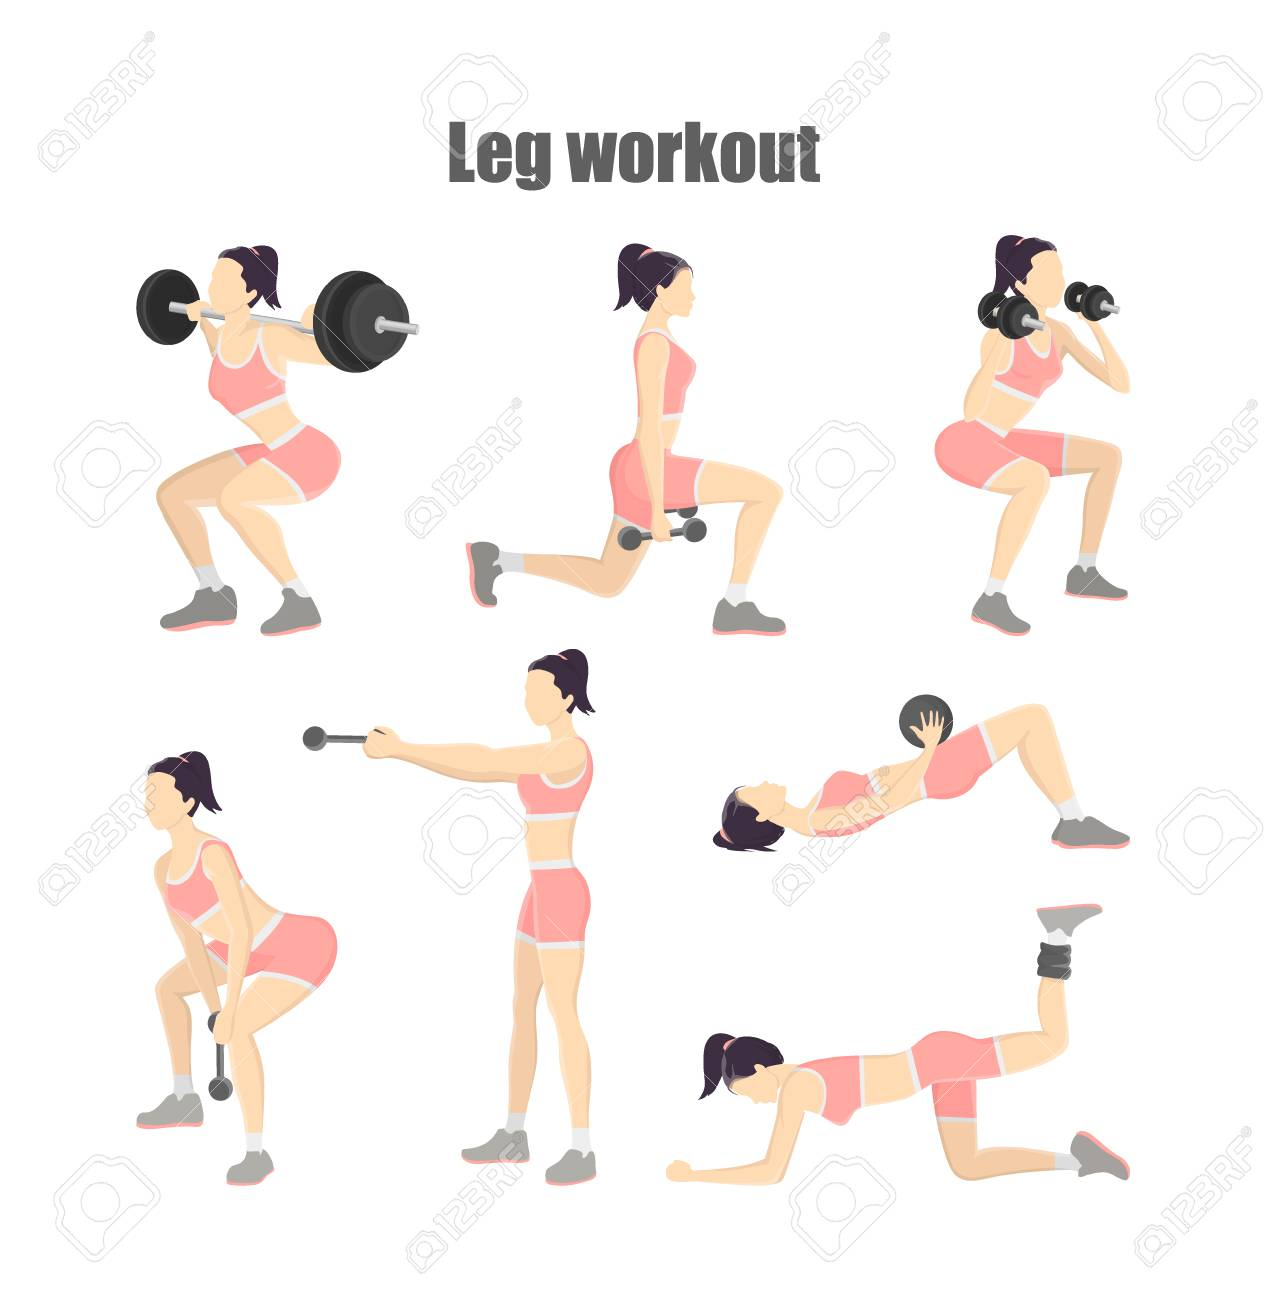 Set of leg workout  Woman doing exercises with dumbbells: donkey